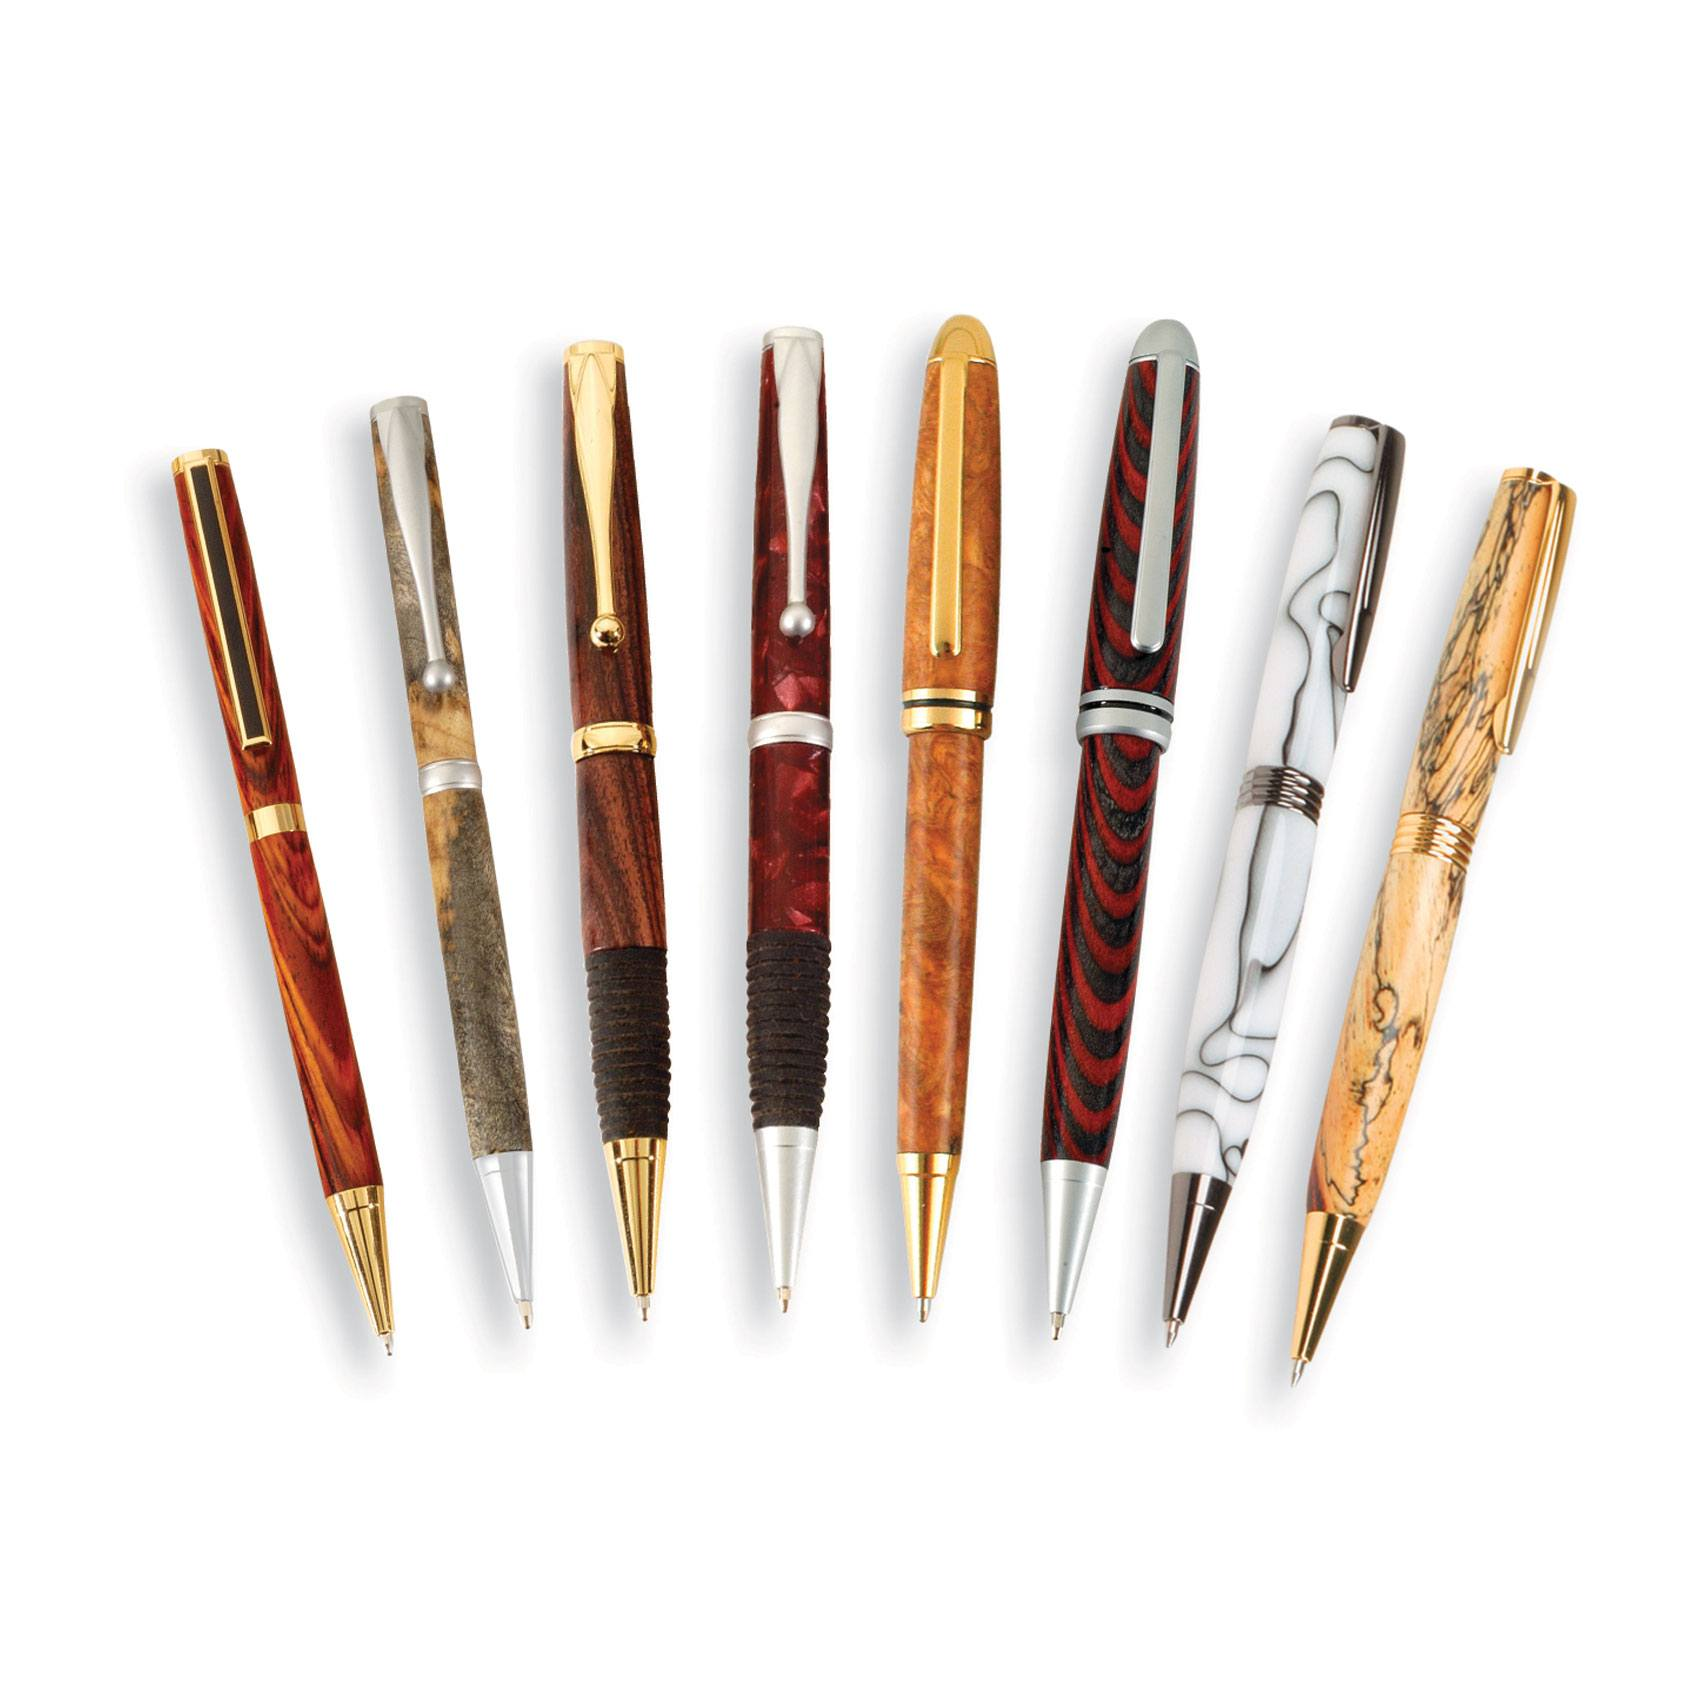 7mm Pen Kit Bundle 8 Pen Kits And 3 Sets Of Free Bushings And One 10 Pack Of Cocobolo Blanks